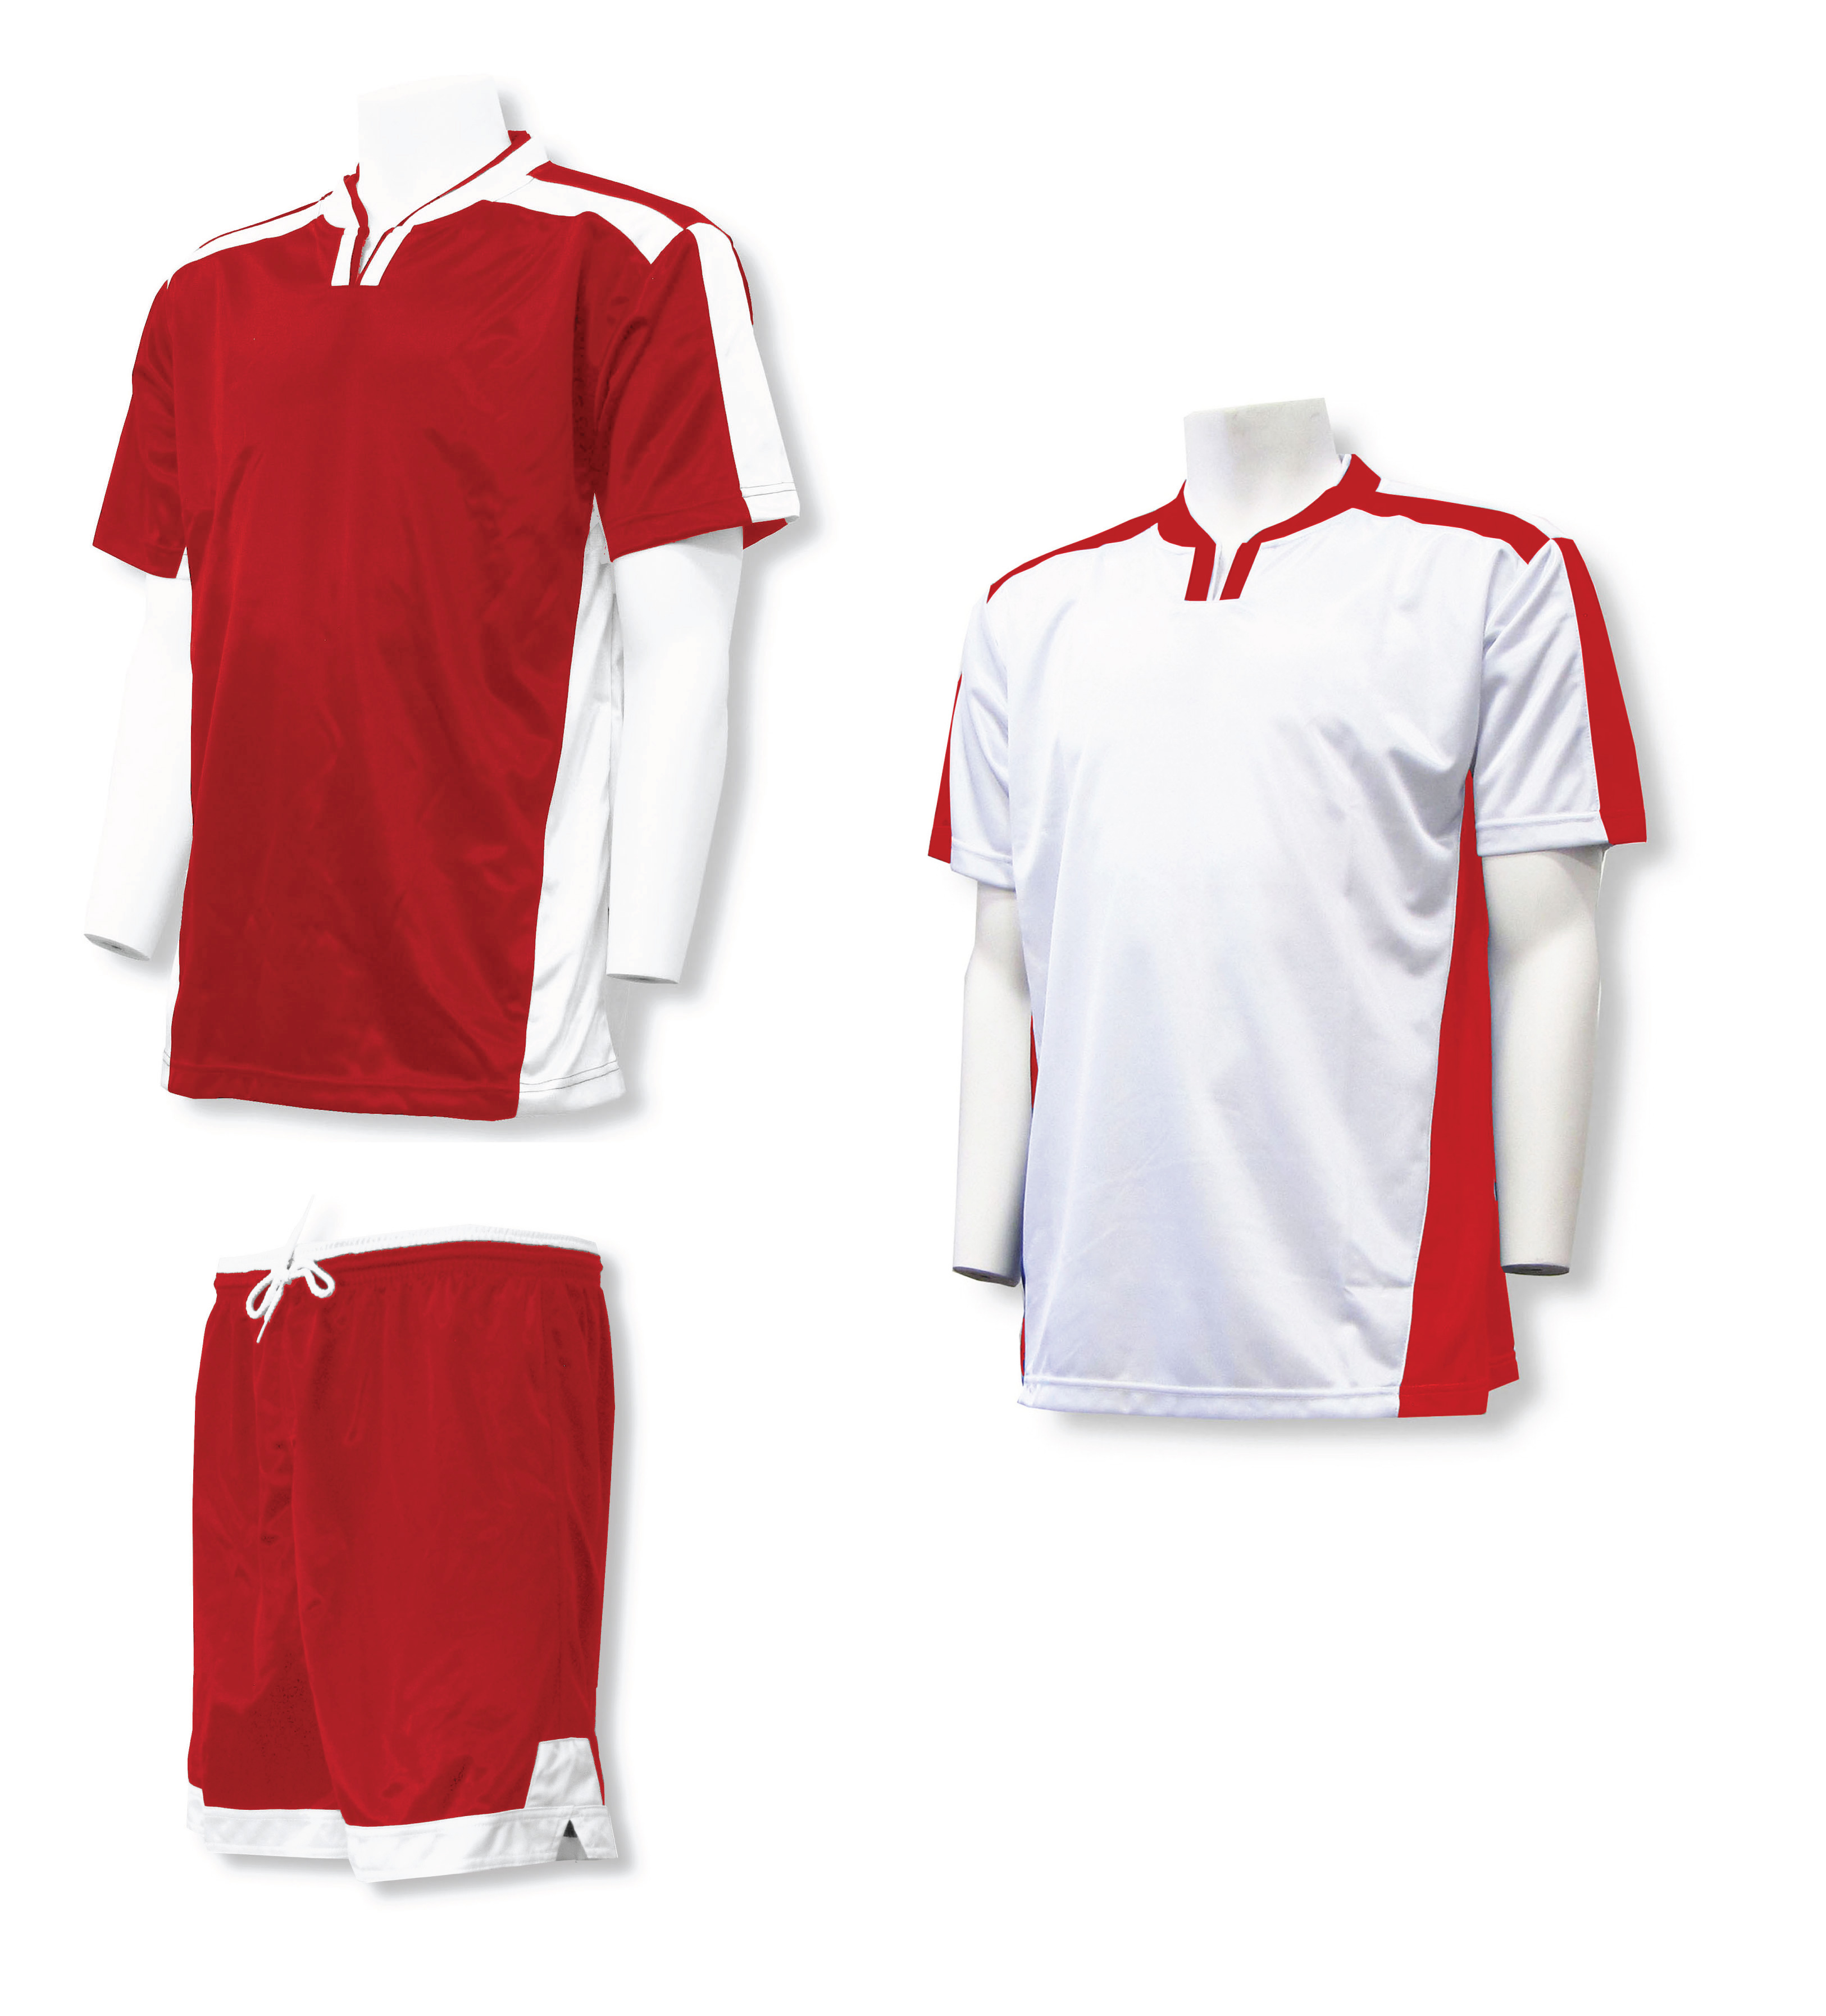 Winchester soccer uniform kit with 2 jerseys, 1 pr shorts in red/white by Code Four Athletics